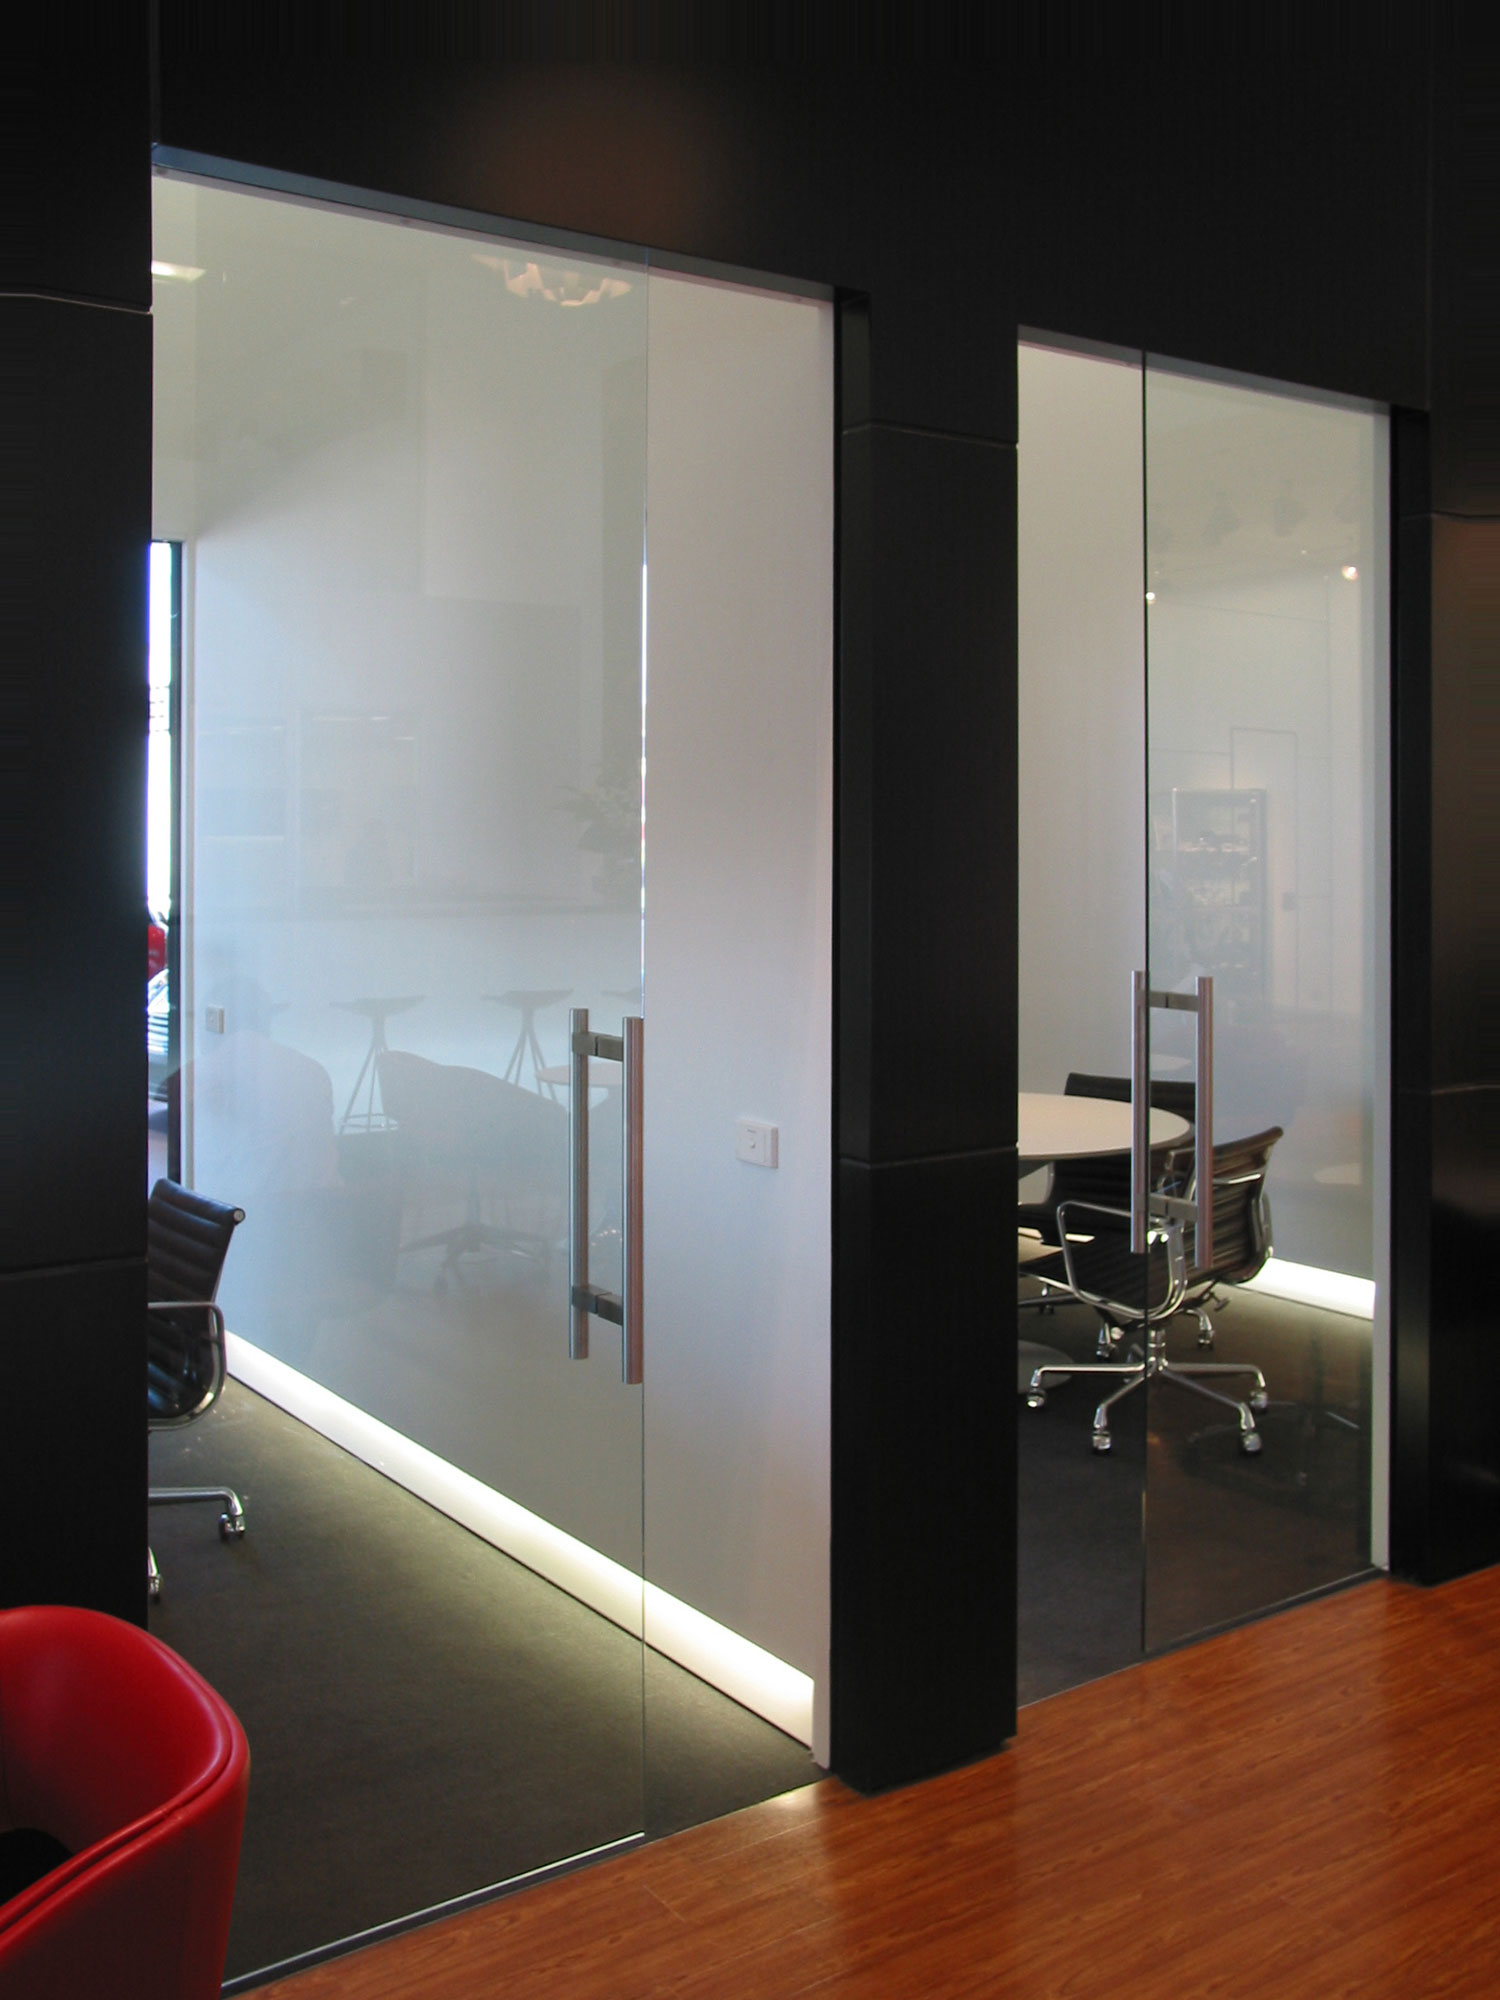 Frameless glass cavity slider frameless glass with squarestop detail planetlyrics Images